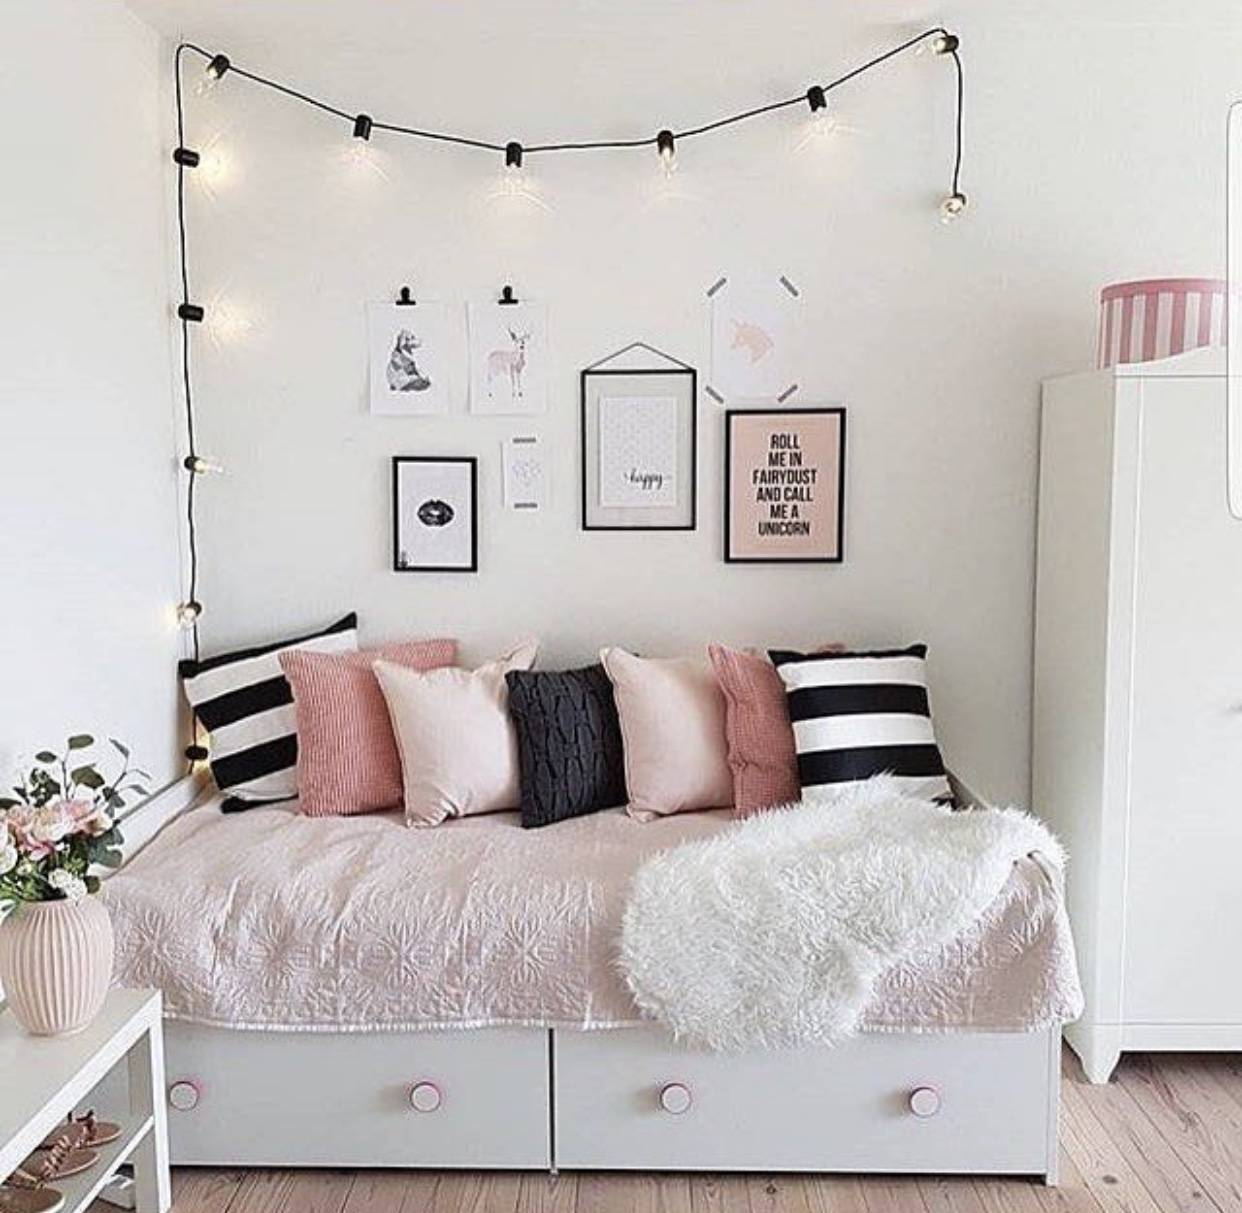 Vsco Pink Room🌺 shared by Faith on We Heart It